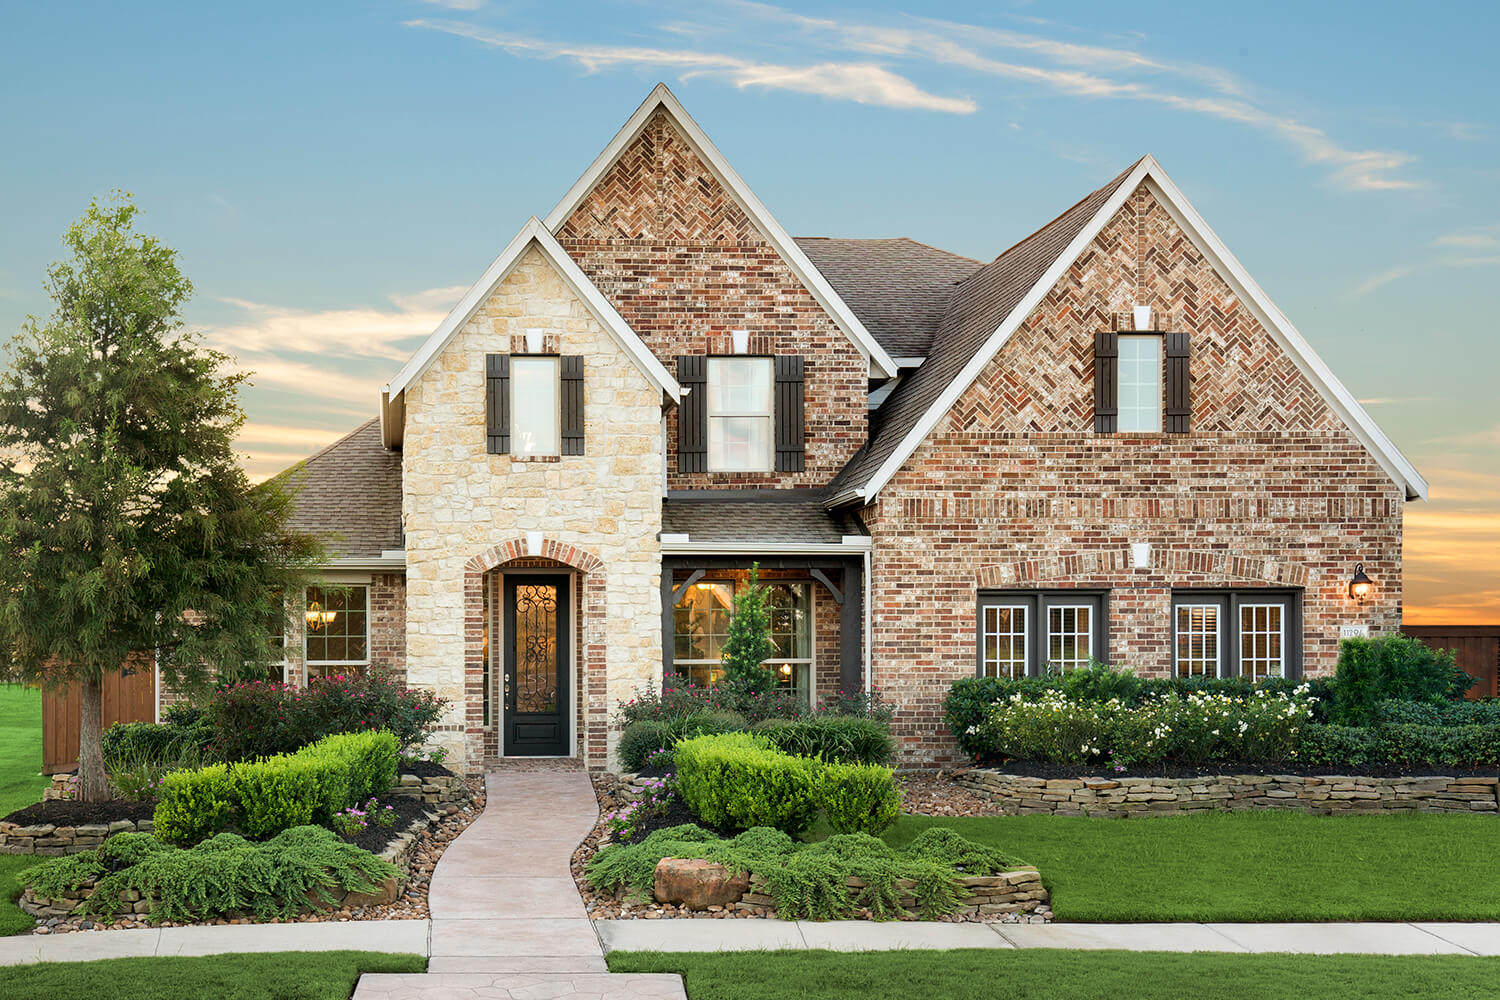 Model Homes Gallery | Houston. Model Home Gallery